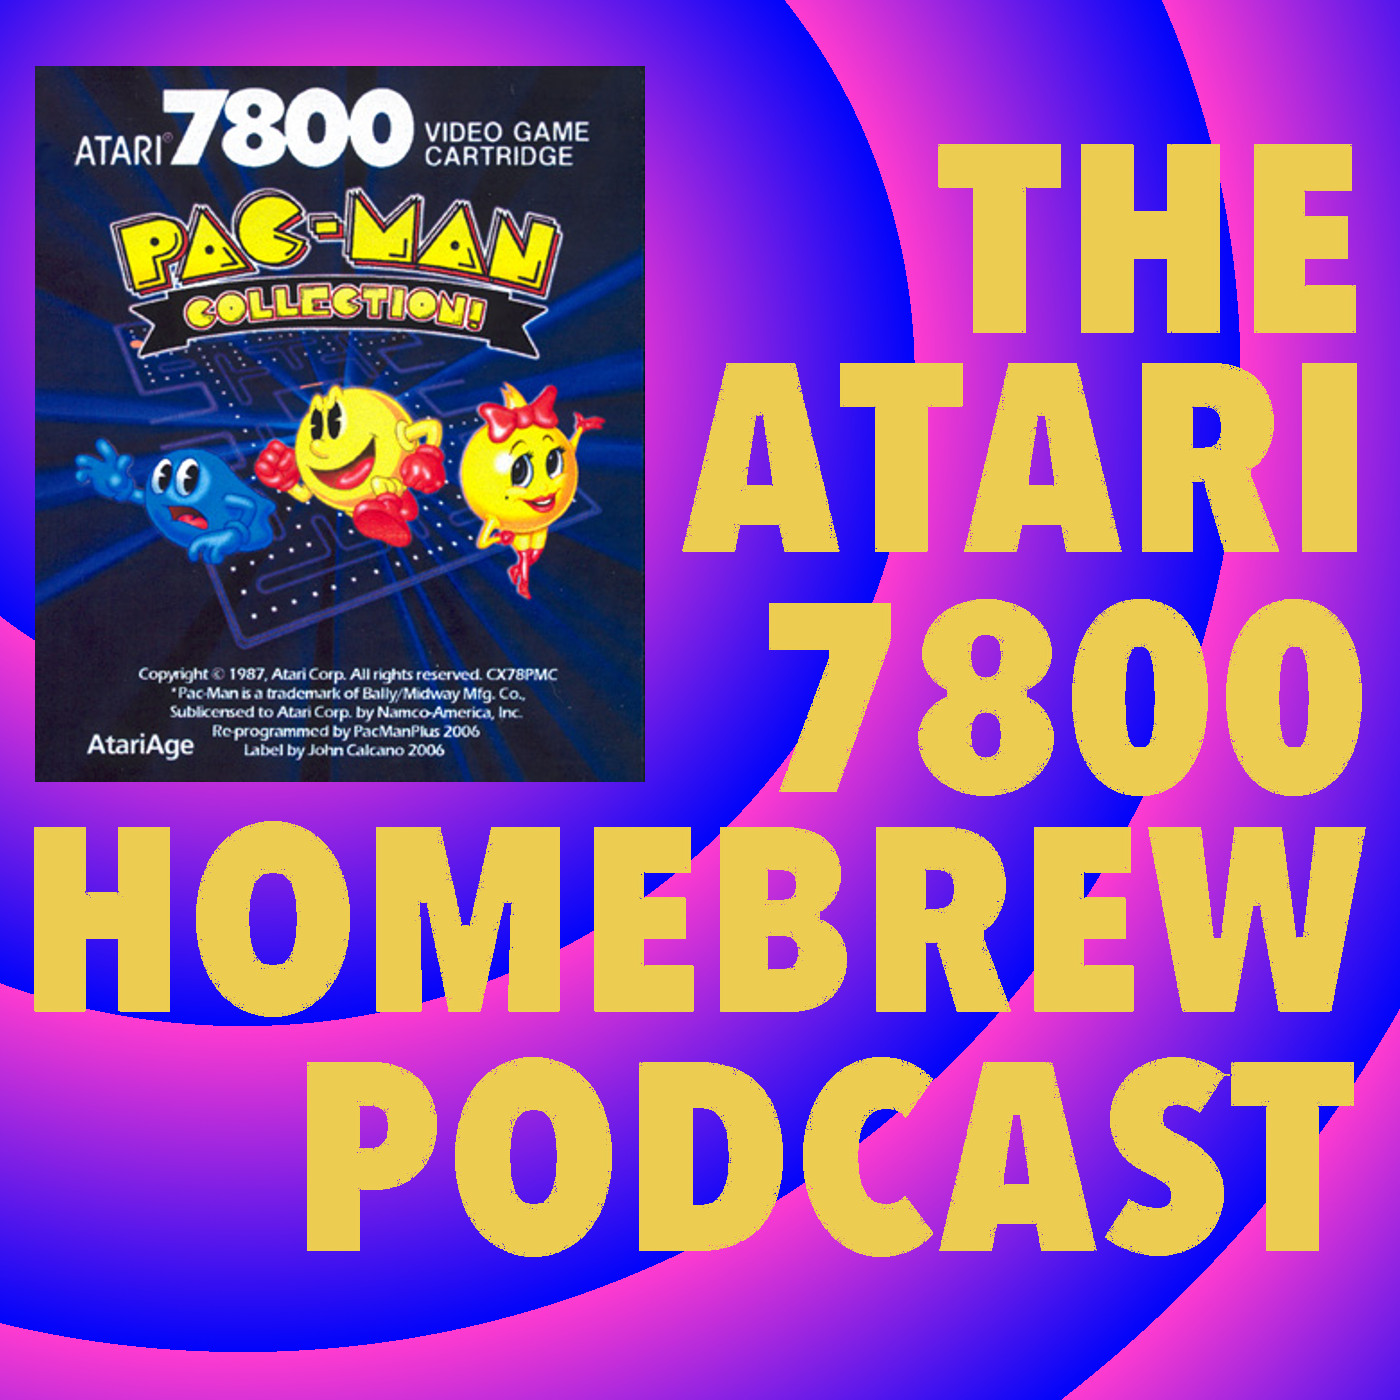 Episode 40: Pac-Man Collection! (part 2)